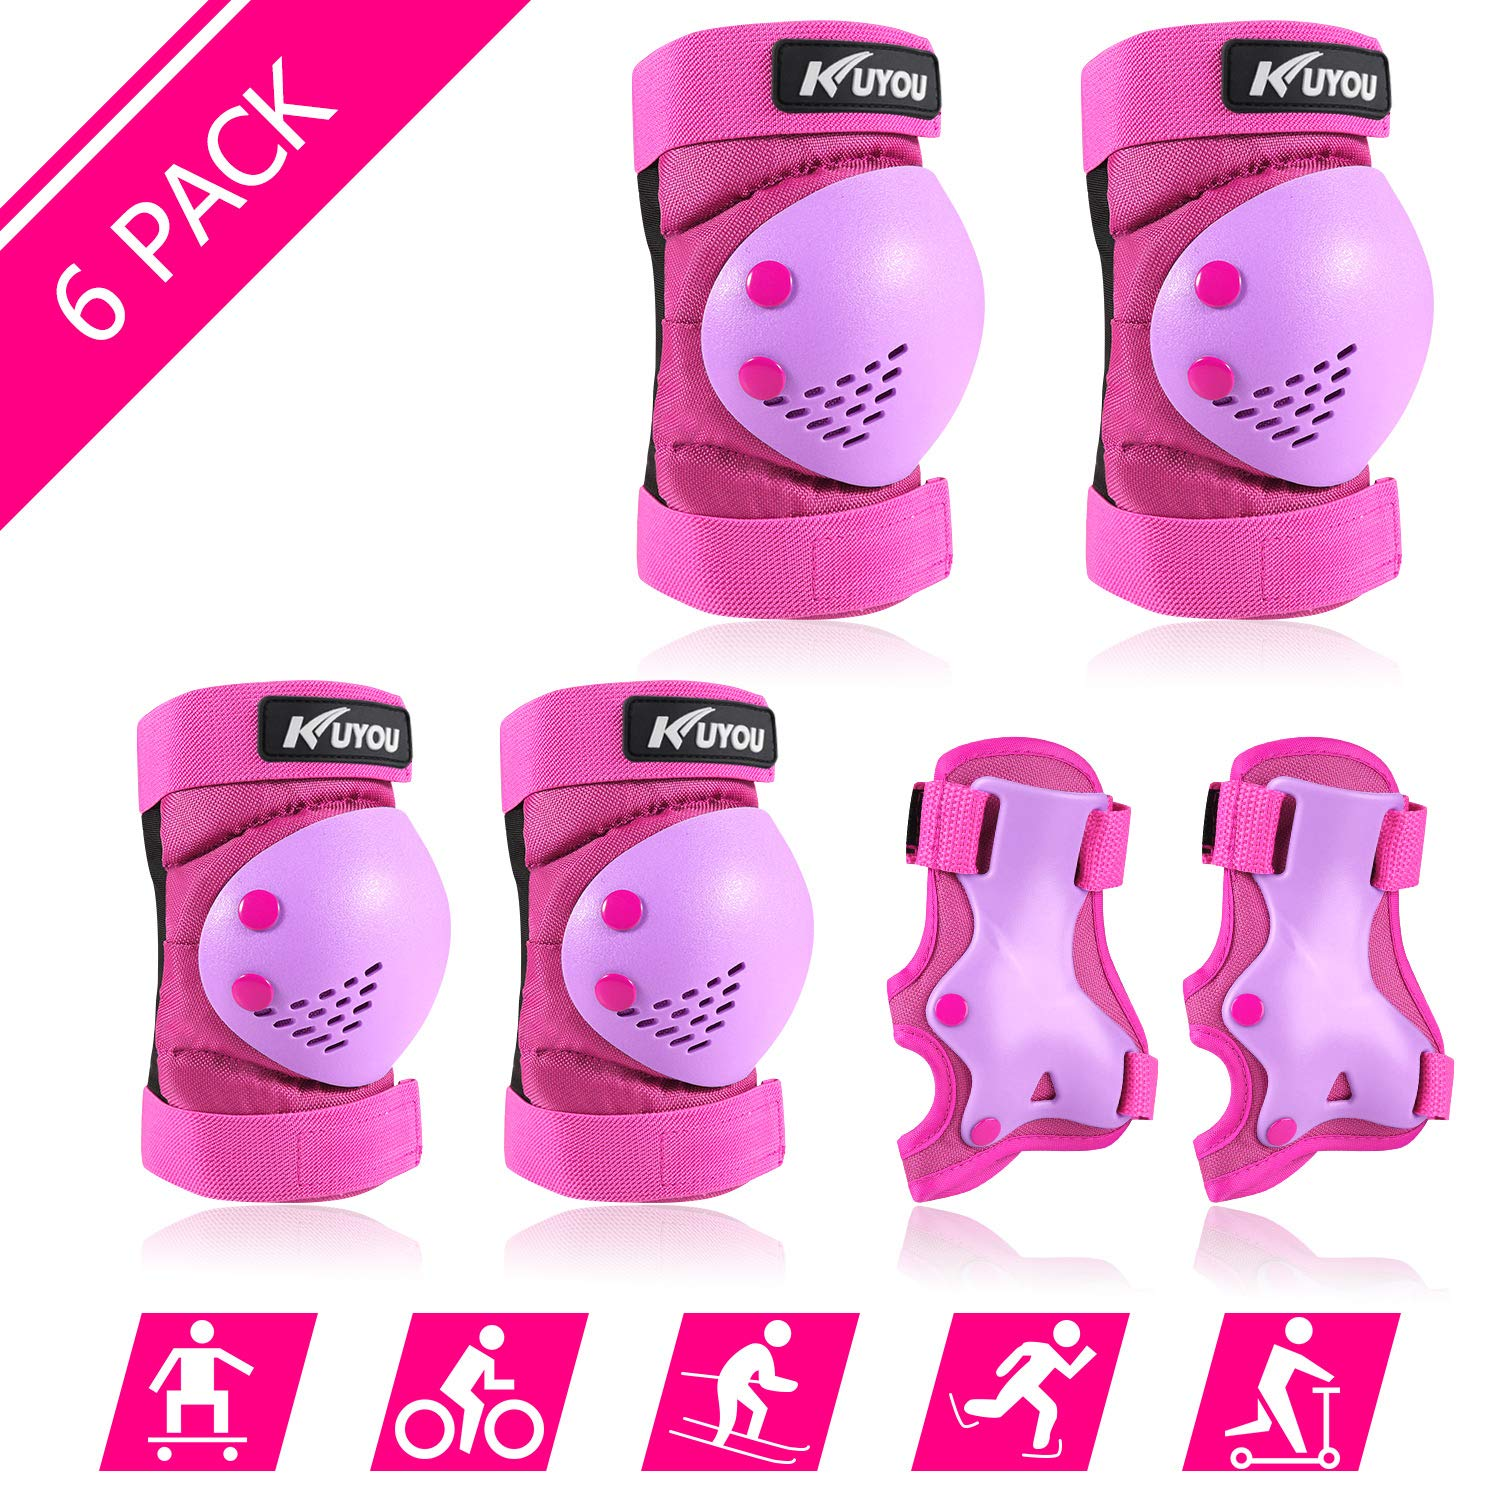 Safety Gear for Kids 3-8 Years Old, Kids Youth Knee Pad Elbow Pads Wrist Guards 3 in 1 Adjustable Protective Gear Set for Roller Skating Cycling Skateboard Bike Scooter Rollerblade